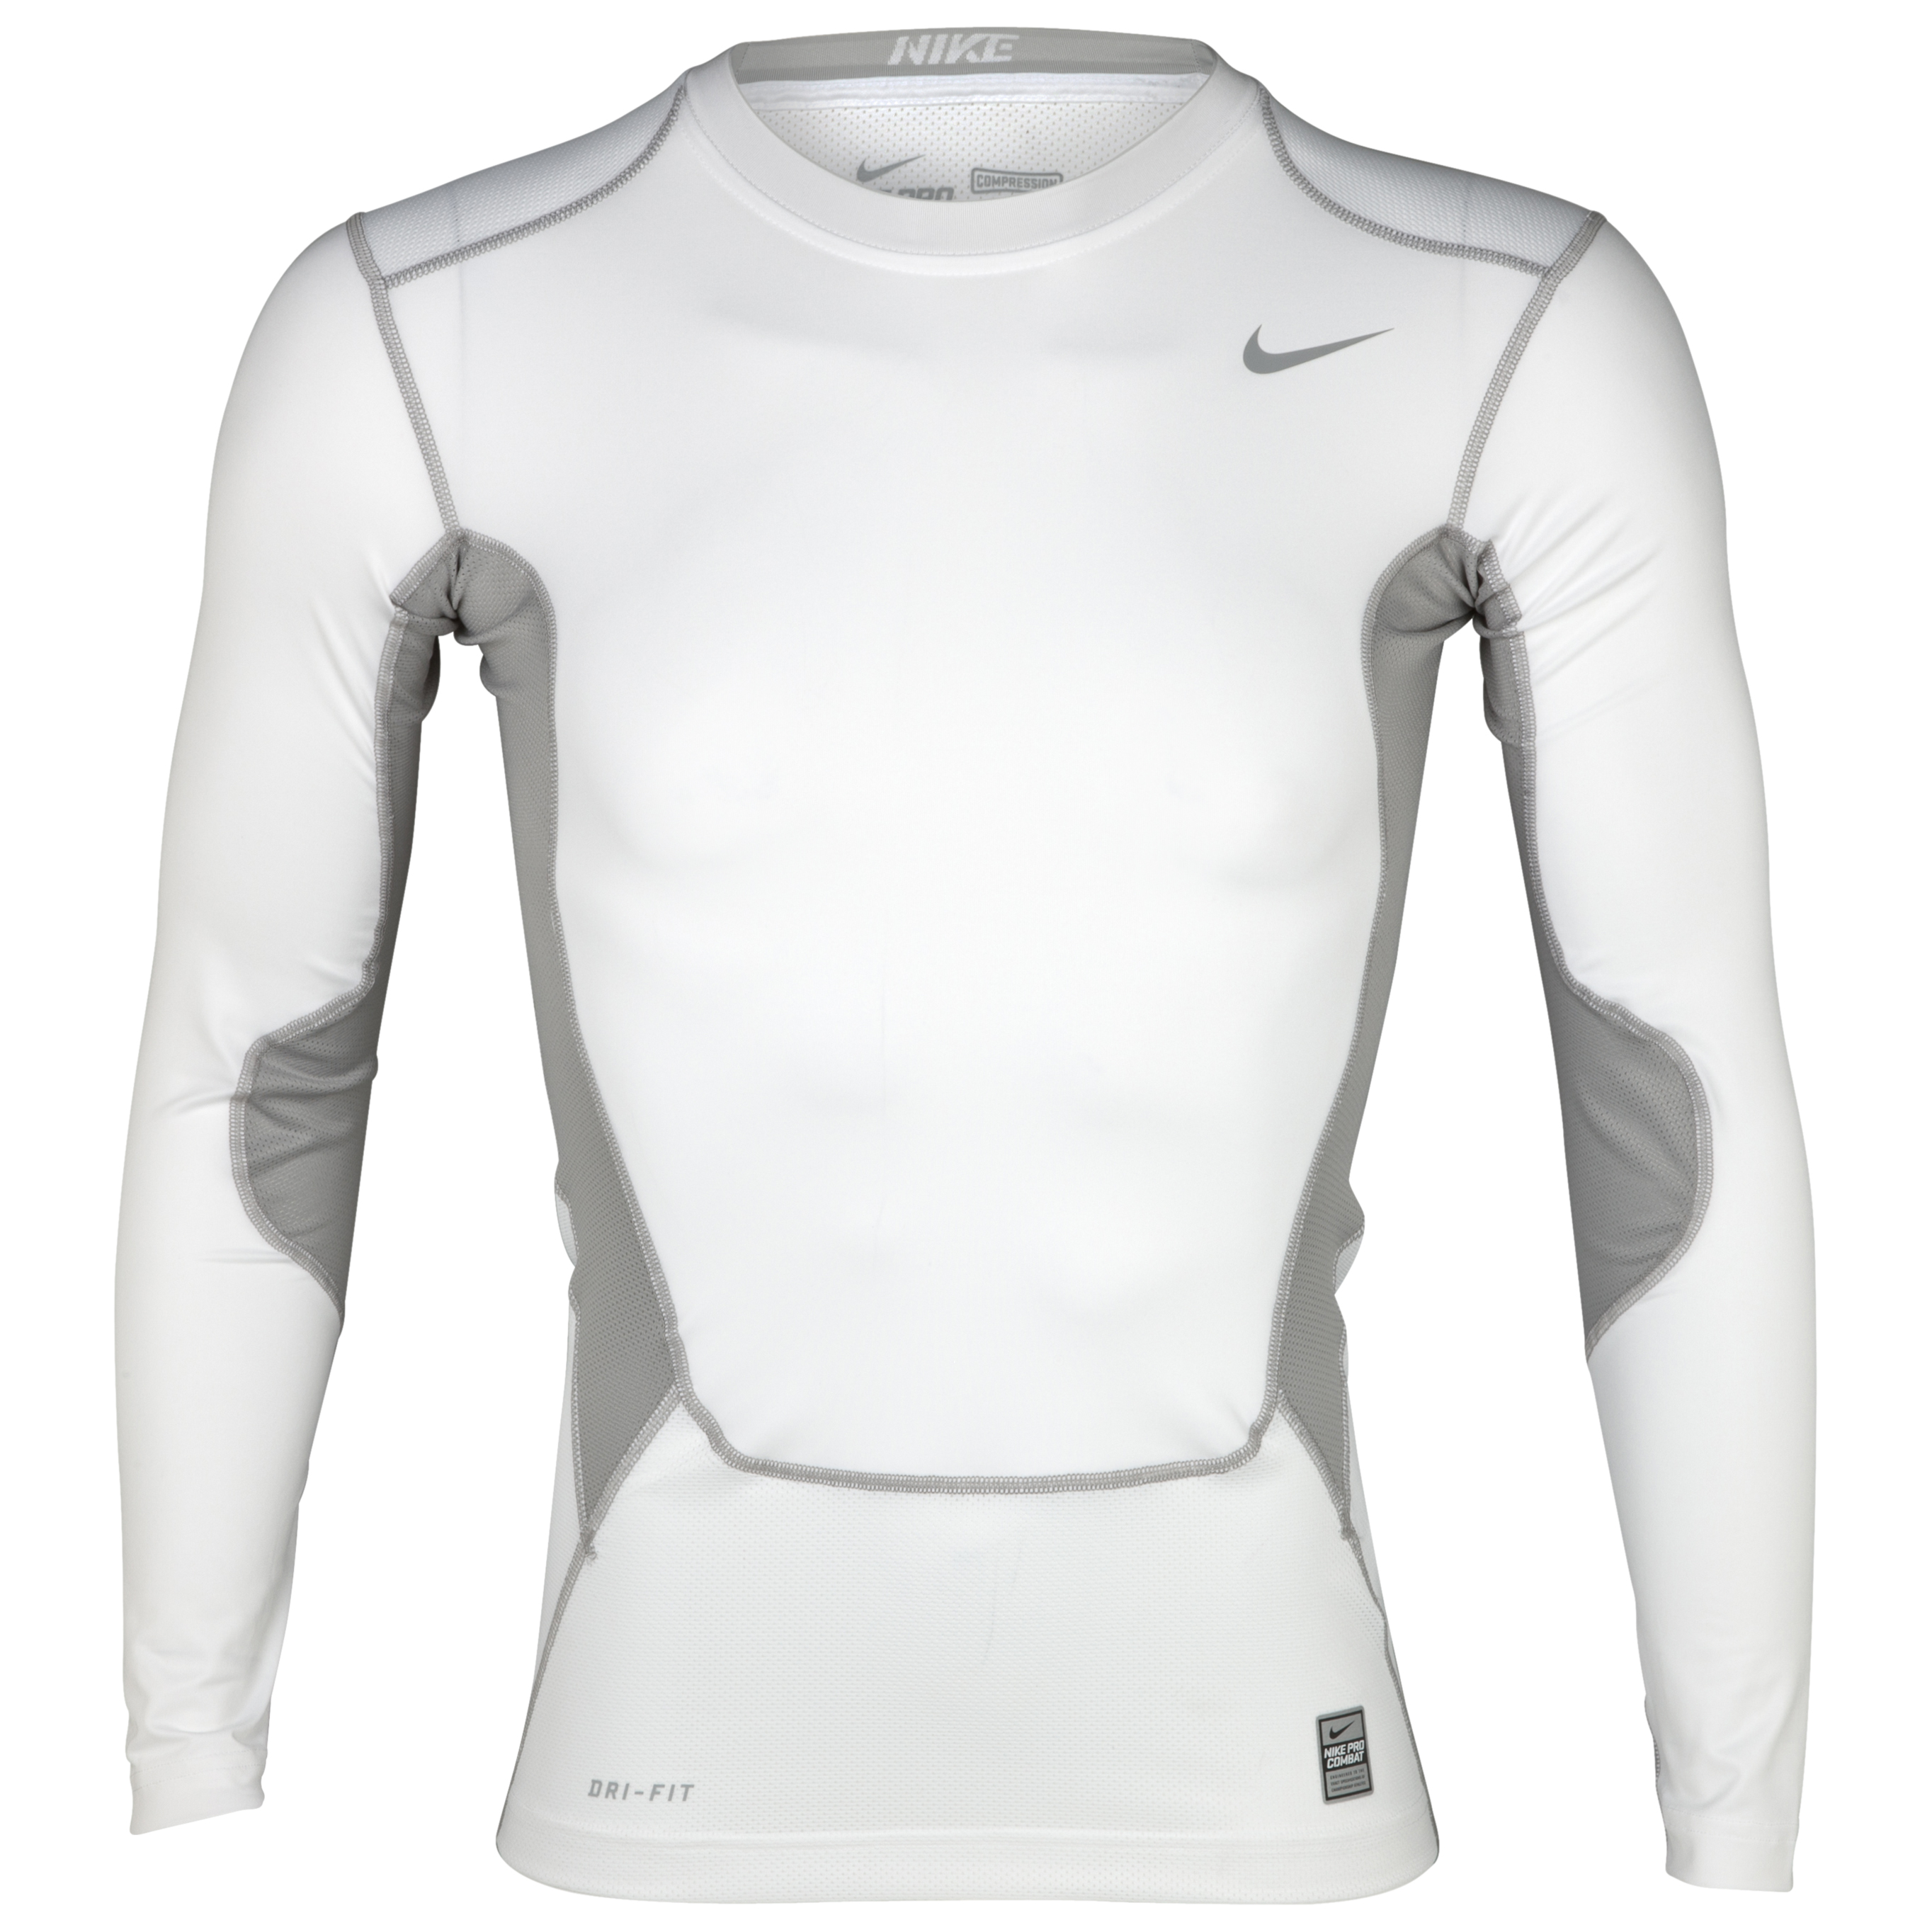 Nike Hypercool Comp Baselayer Top - Long Sleeve - White/matte Silver